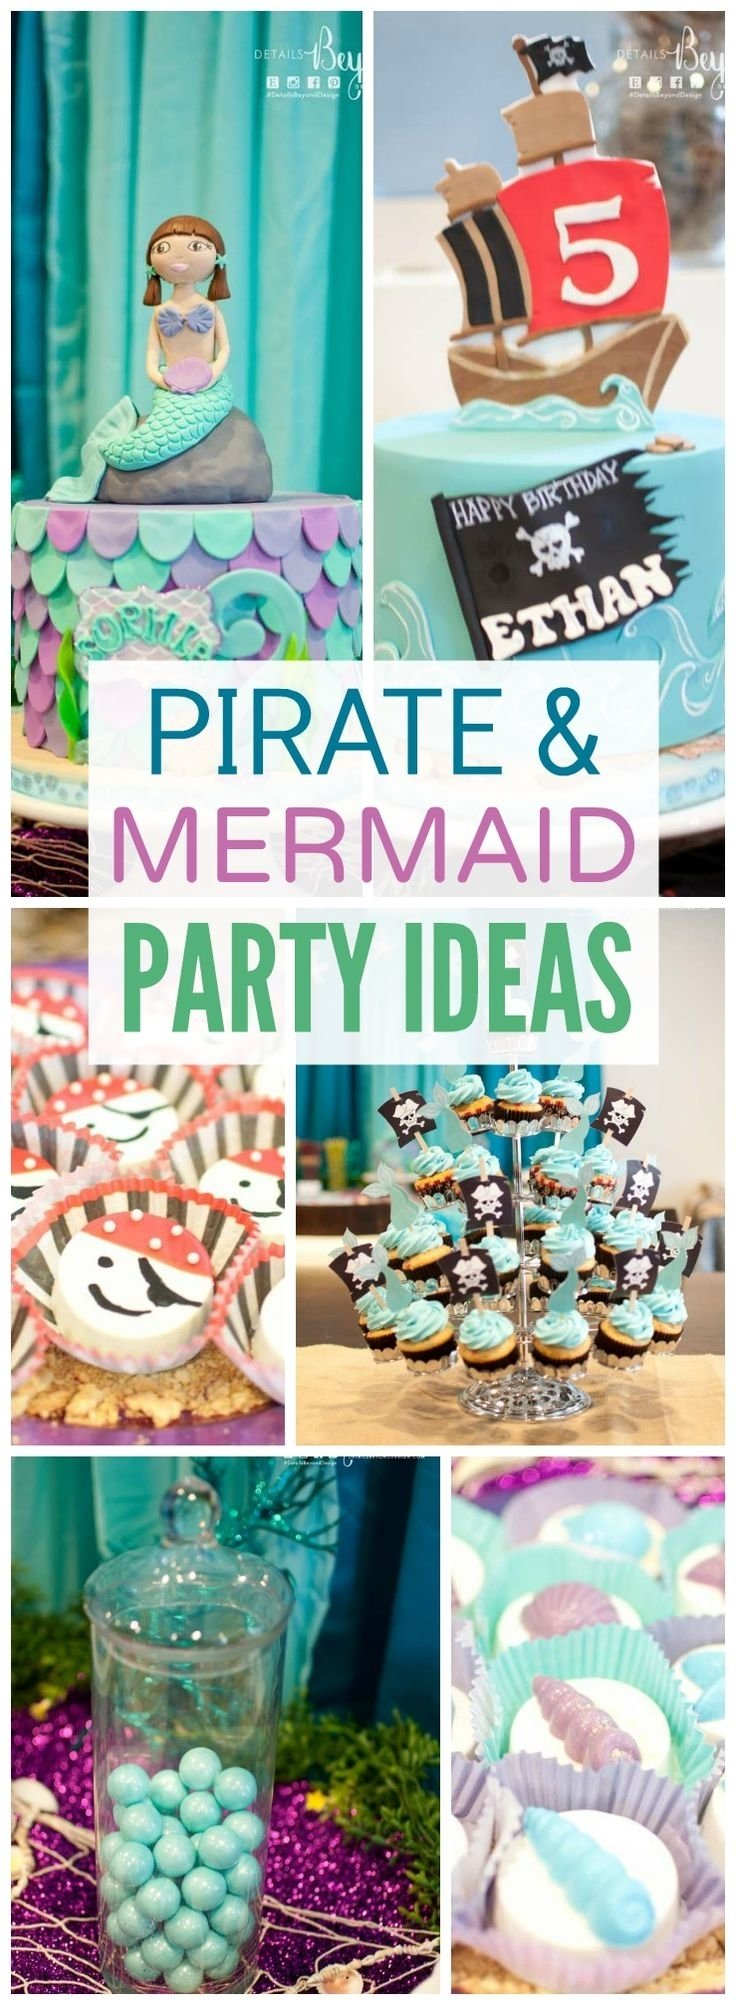 144 best parties for twins images on pinterest | anniversary ideas